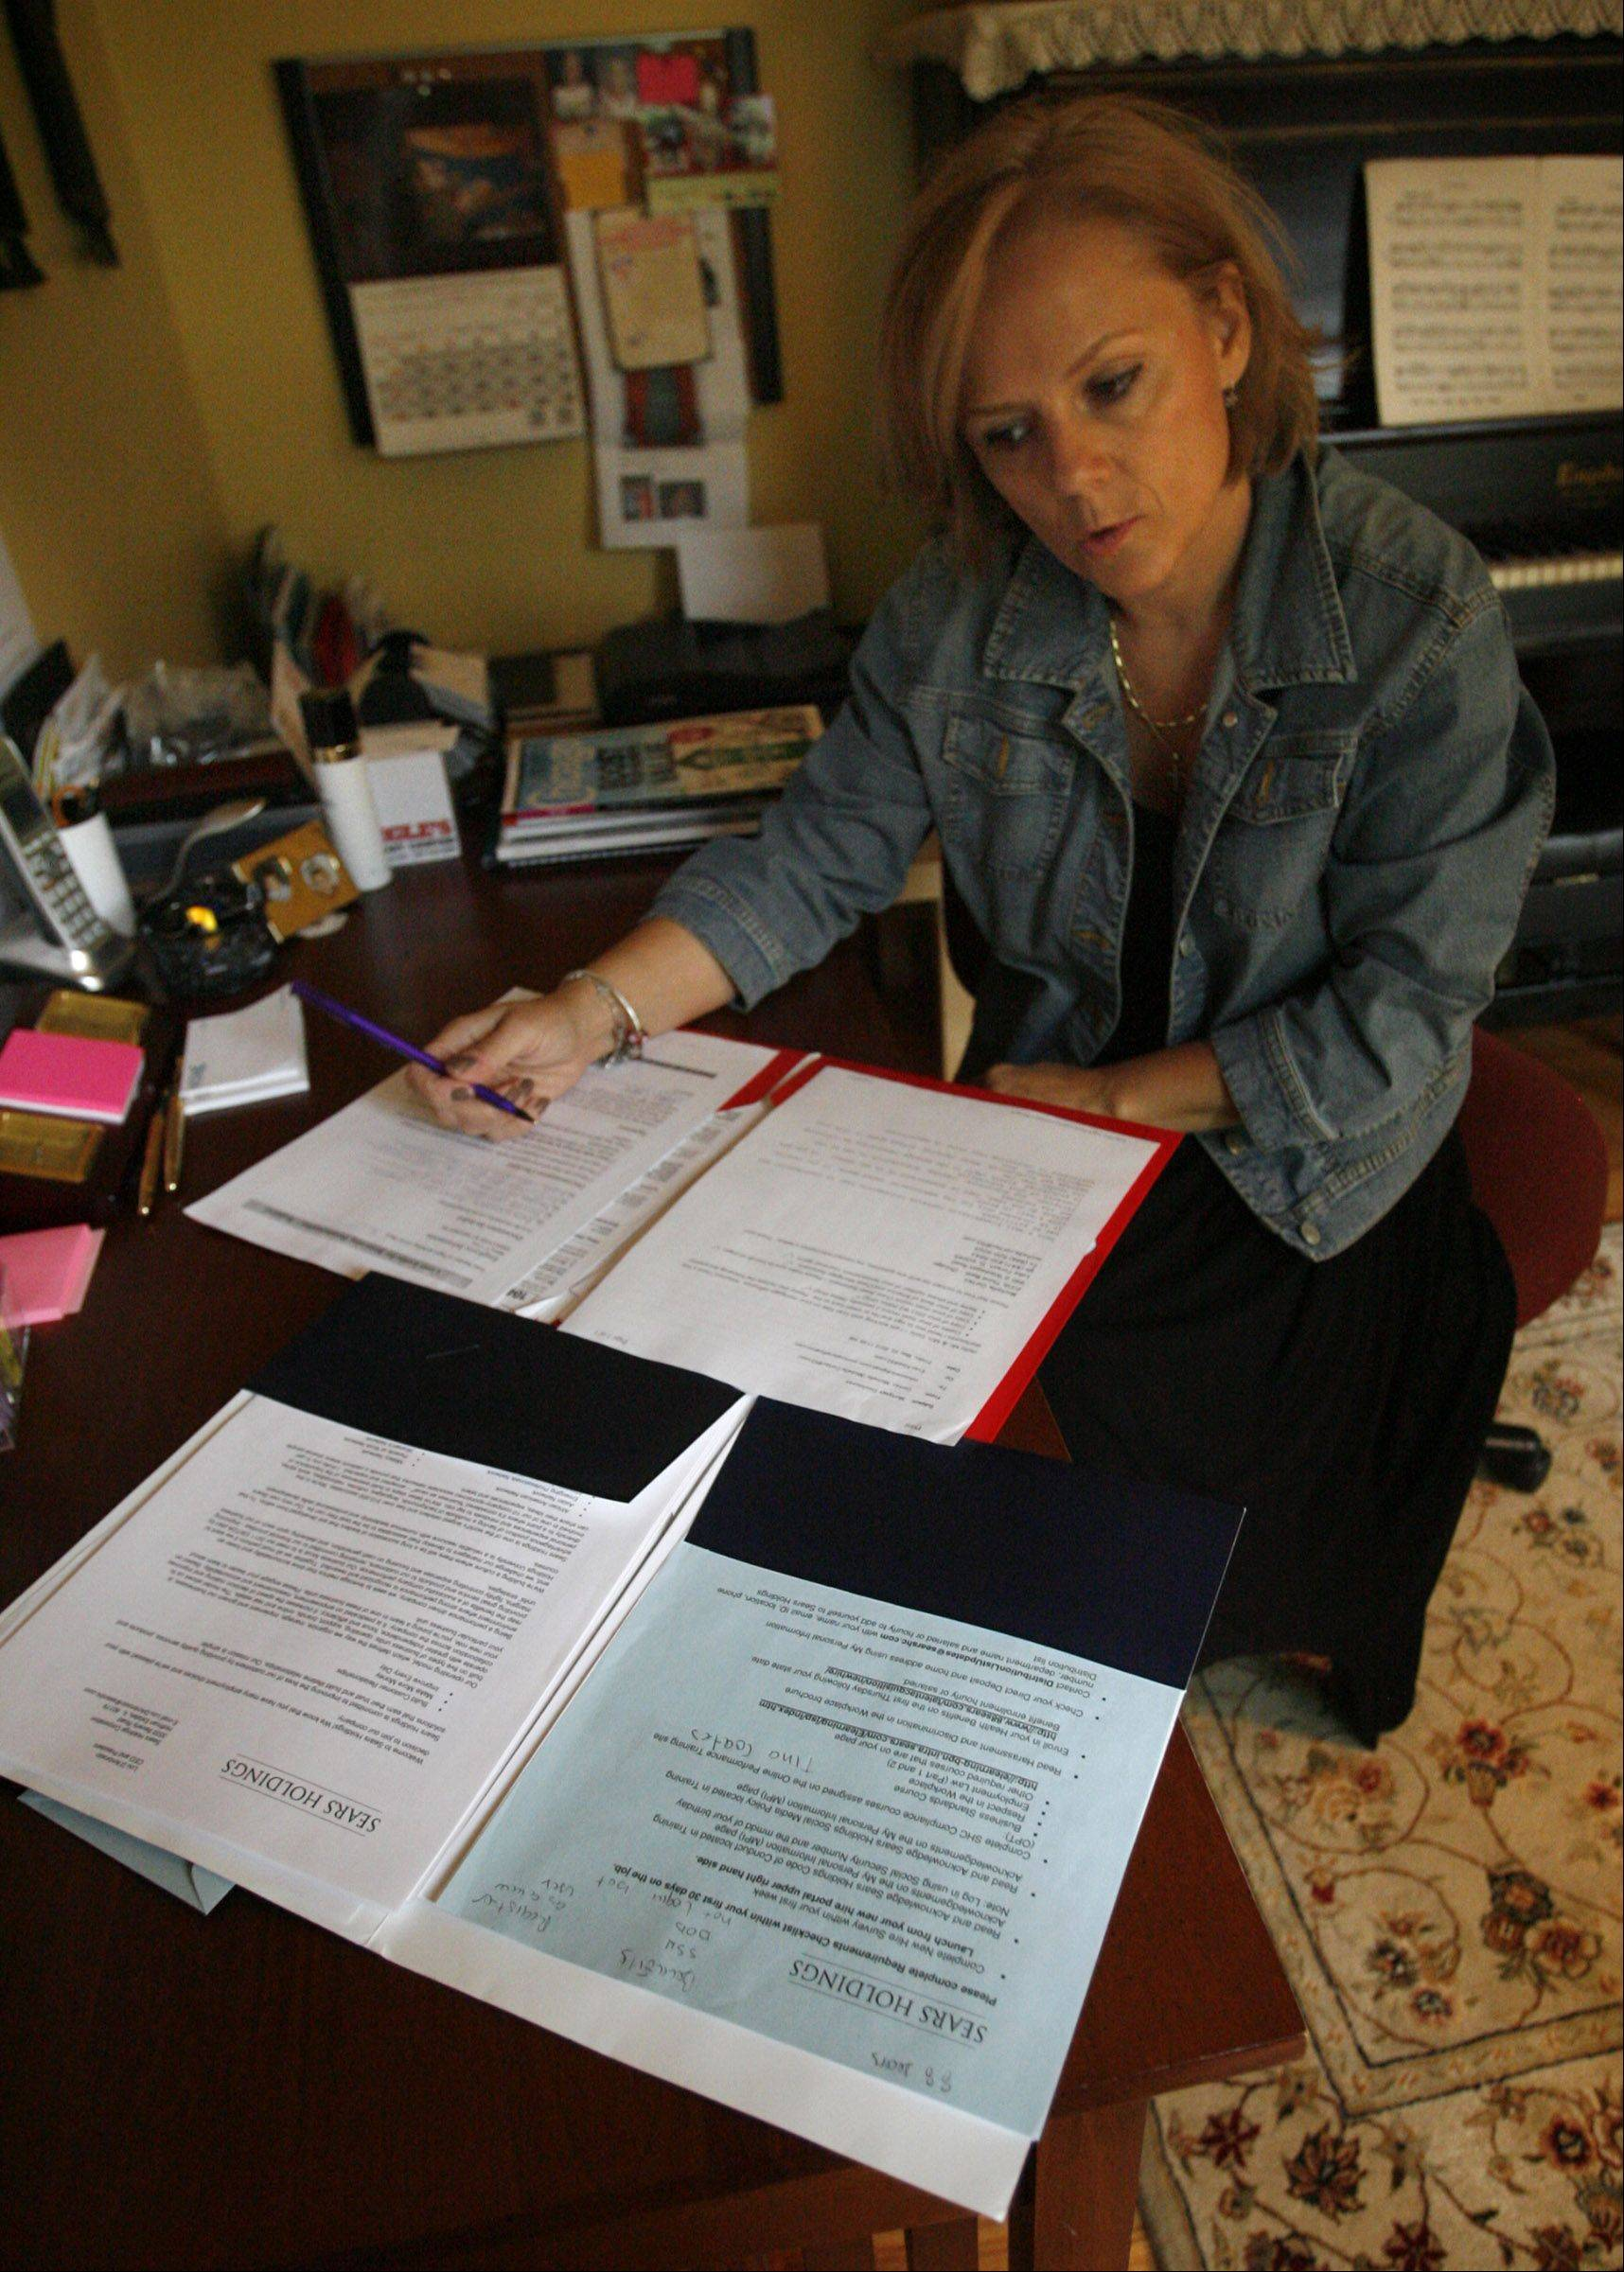 Valeria Coric reviewing mortgage paperwork at her home in Lincolnshire.